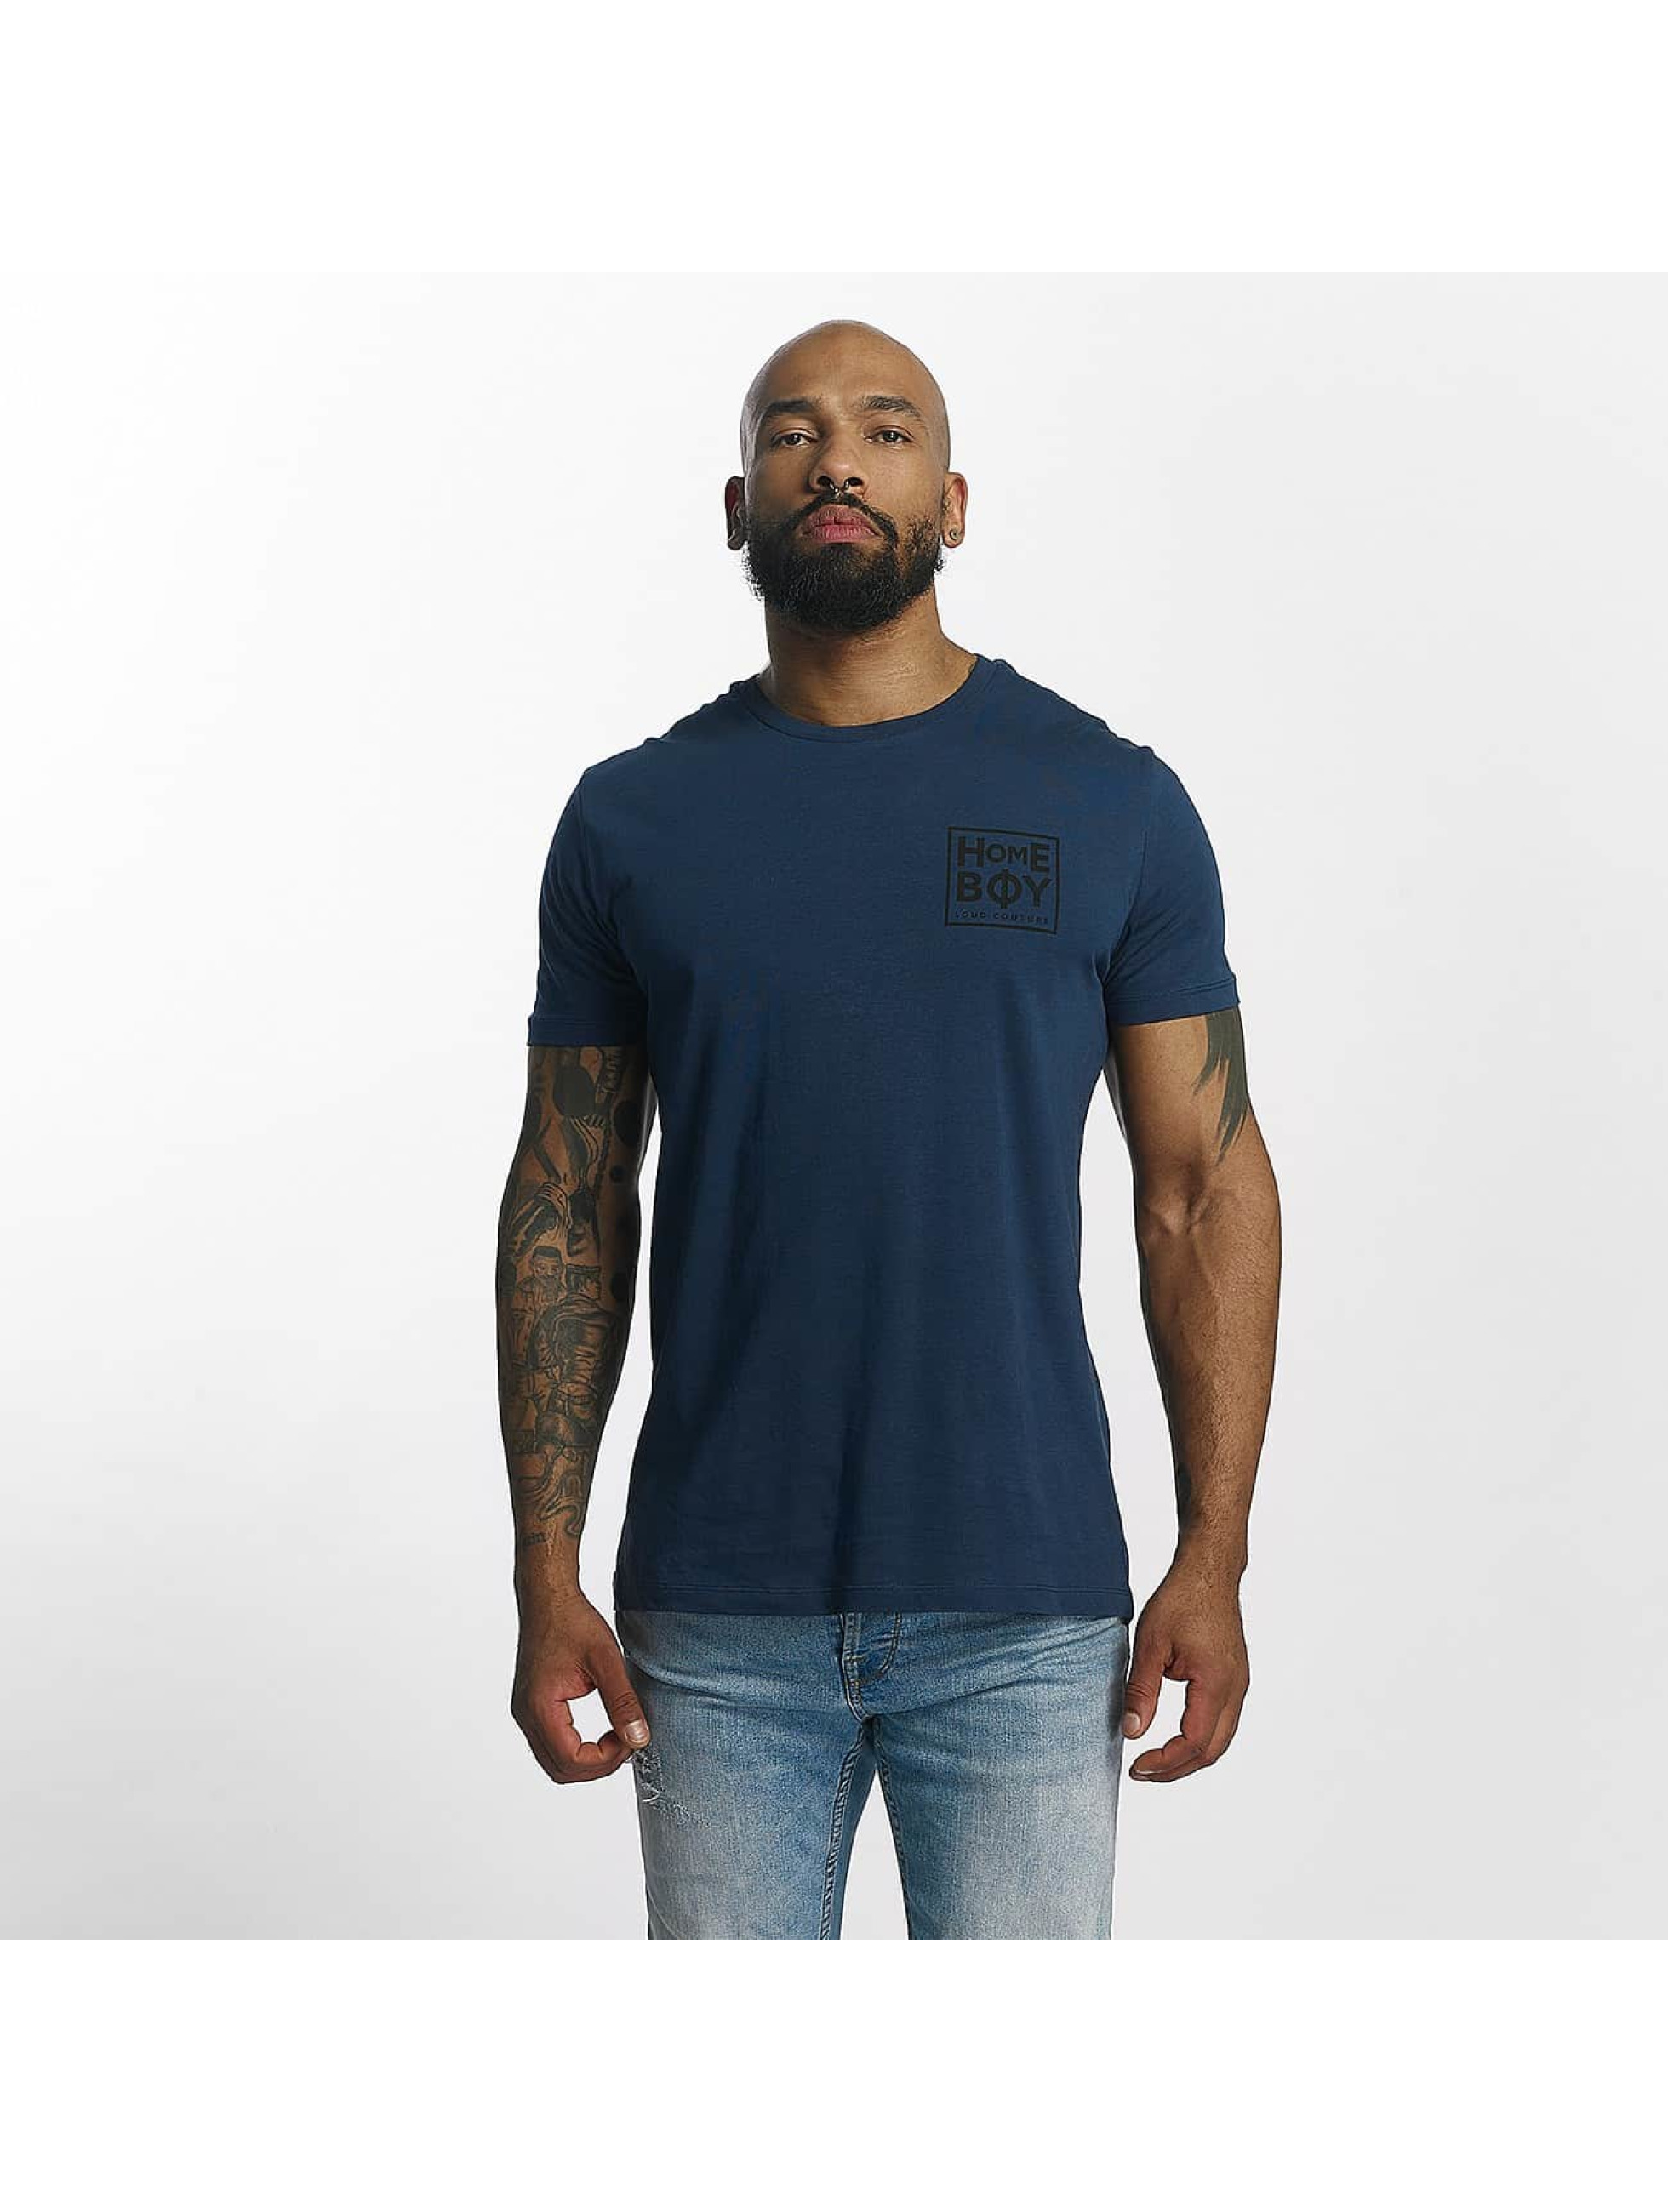 Homeboy Männer T-Shirt Take You Home in blau